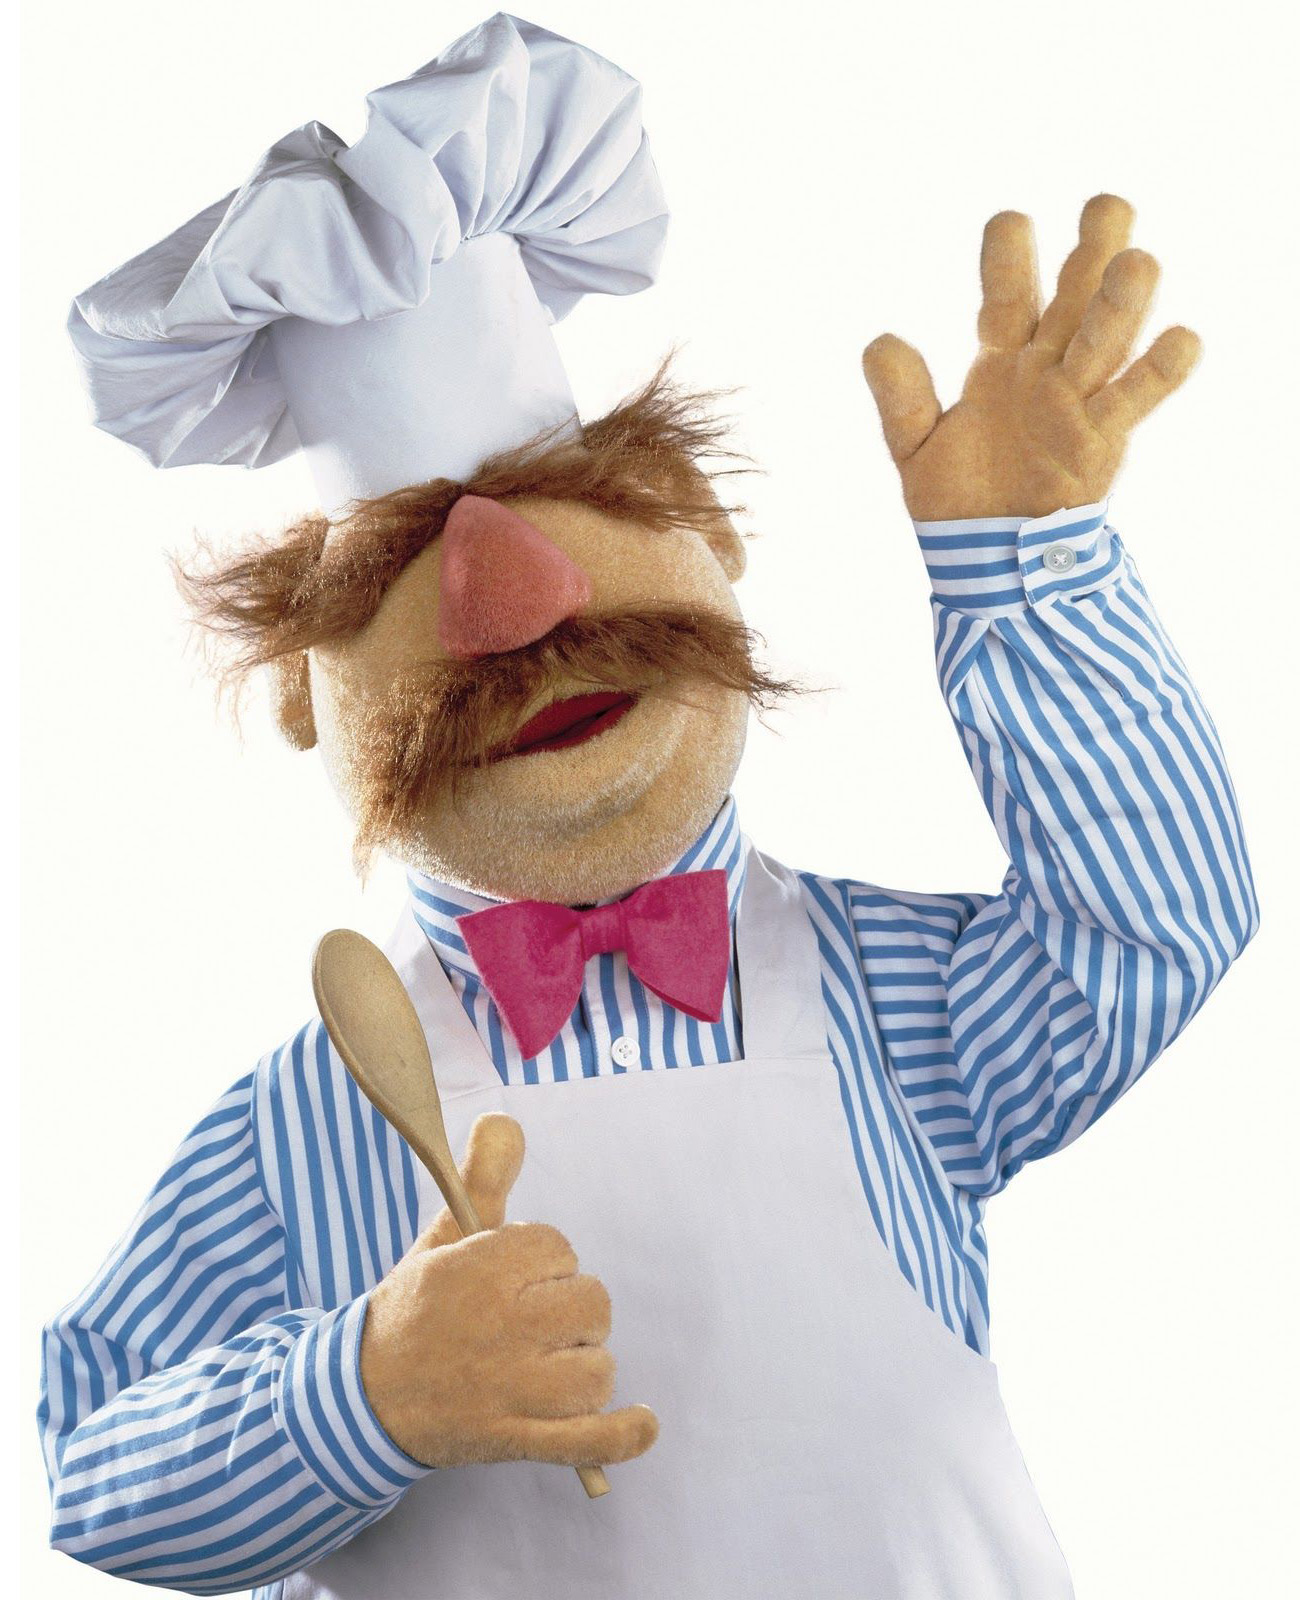 http://images.wikia.com/muppet/images/4/41/Swedish-chef.jpg